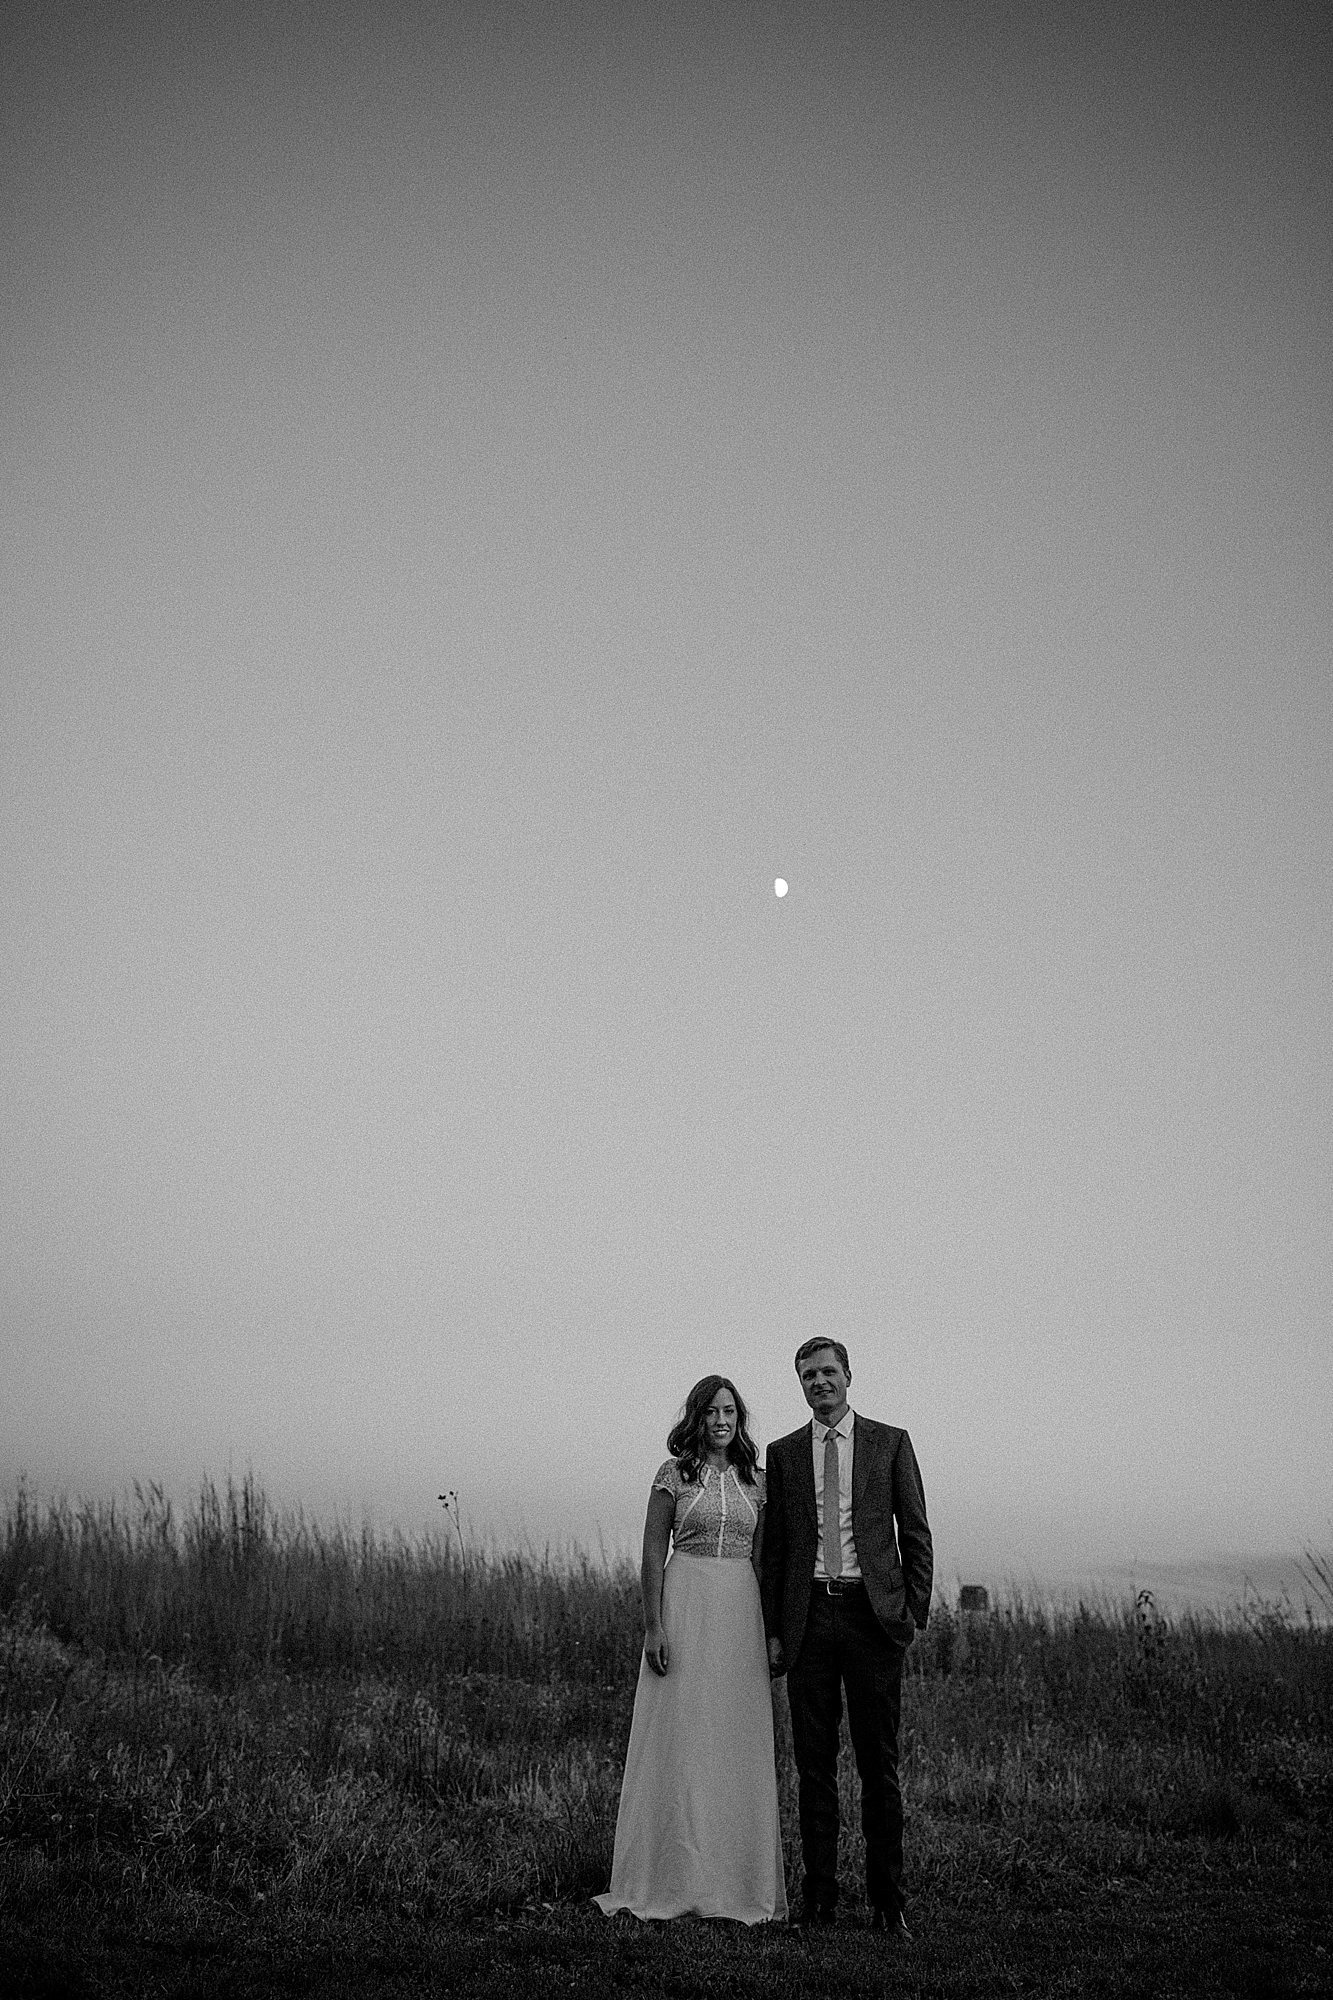 des moines moonrise engagement shoot